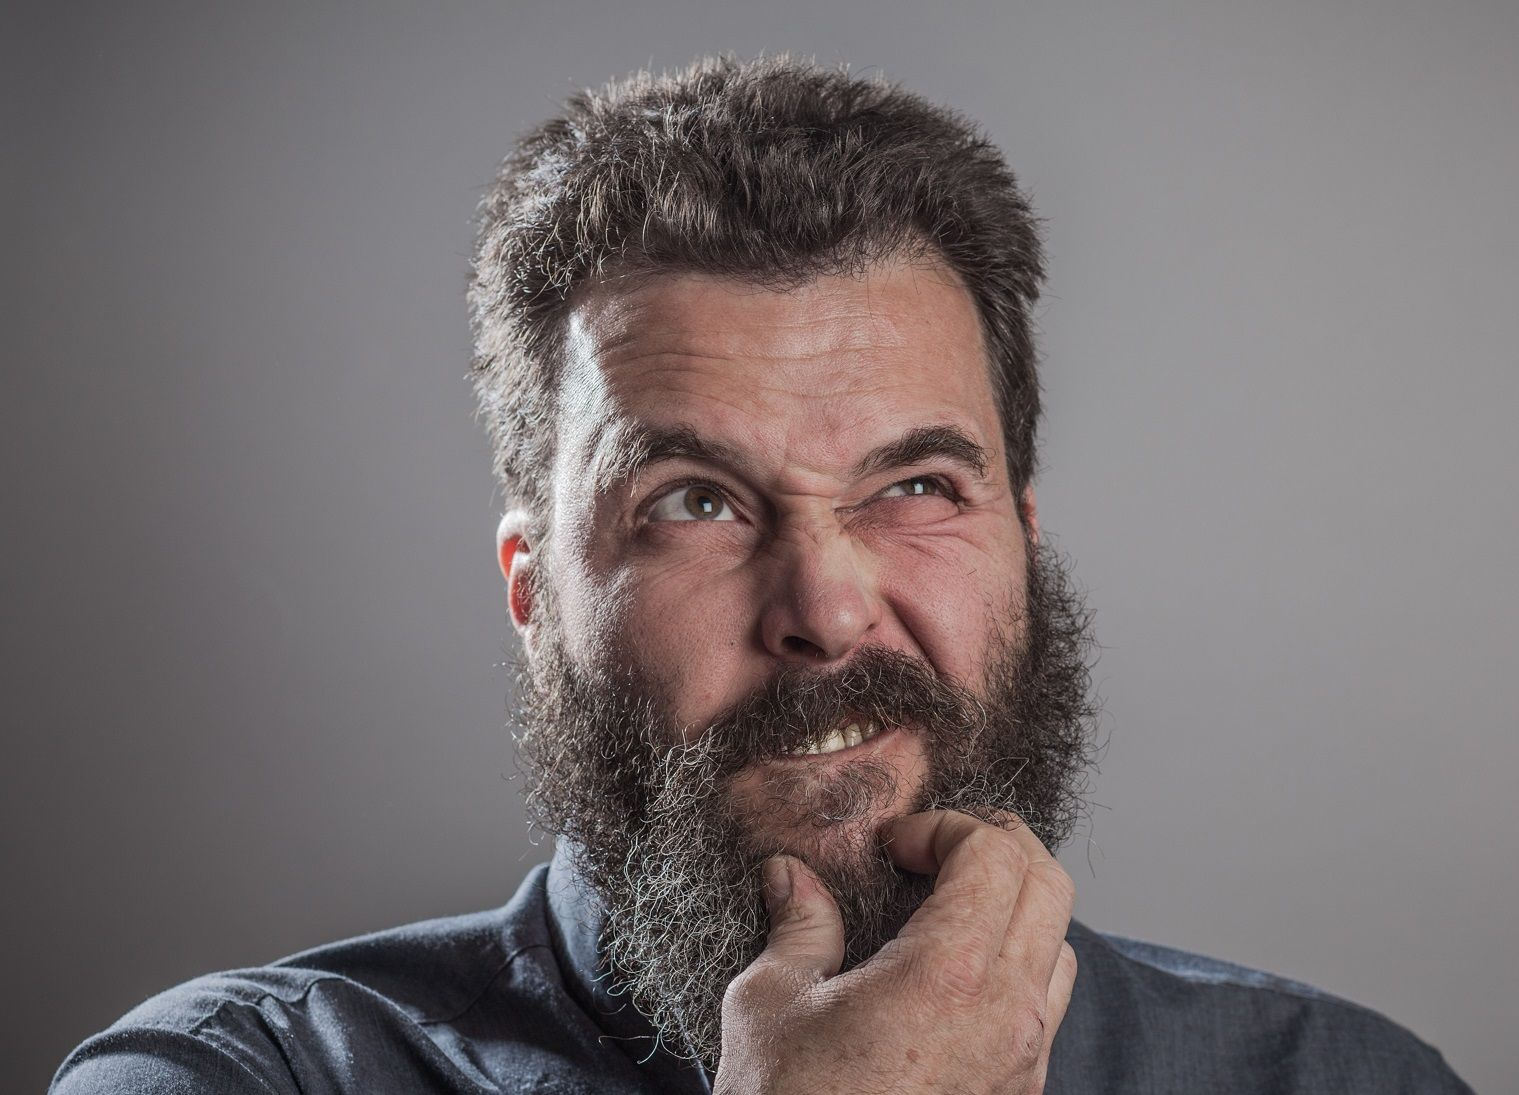 How to Relieve an Itchy Beard Mens facial hair styles